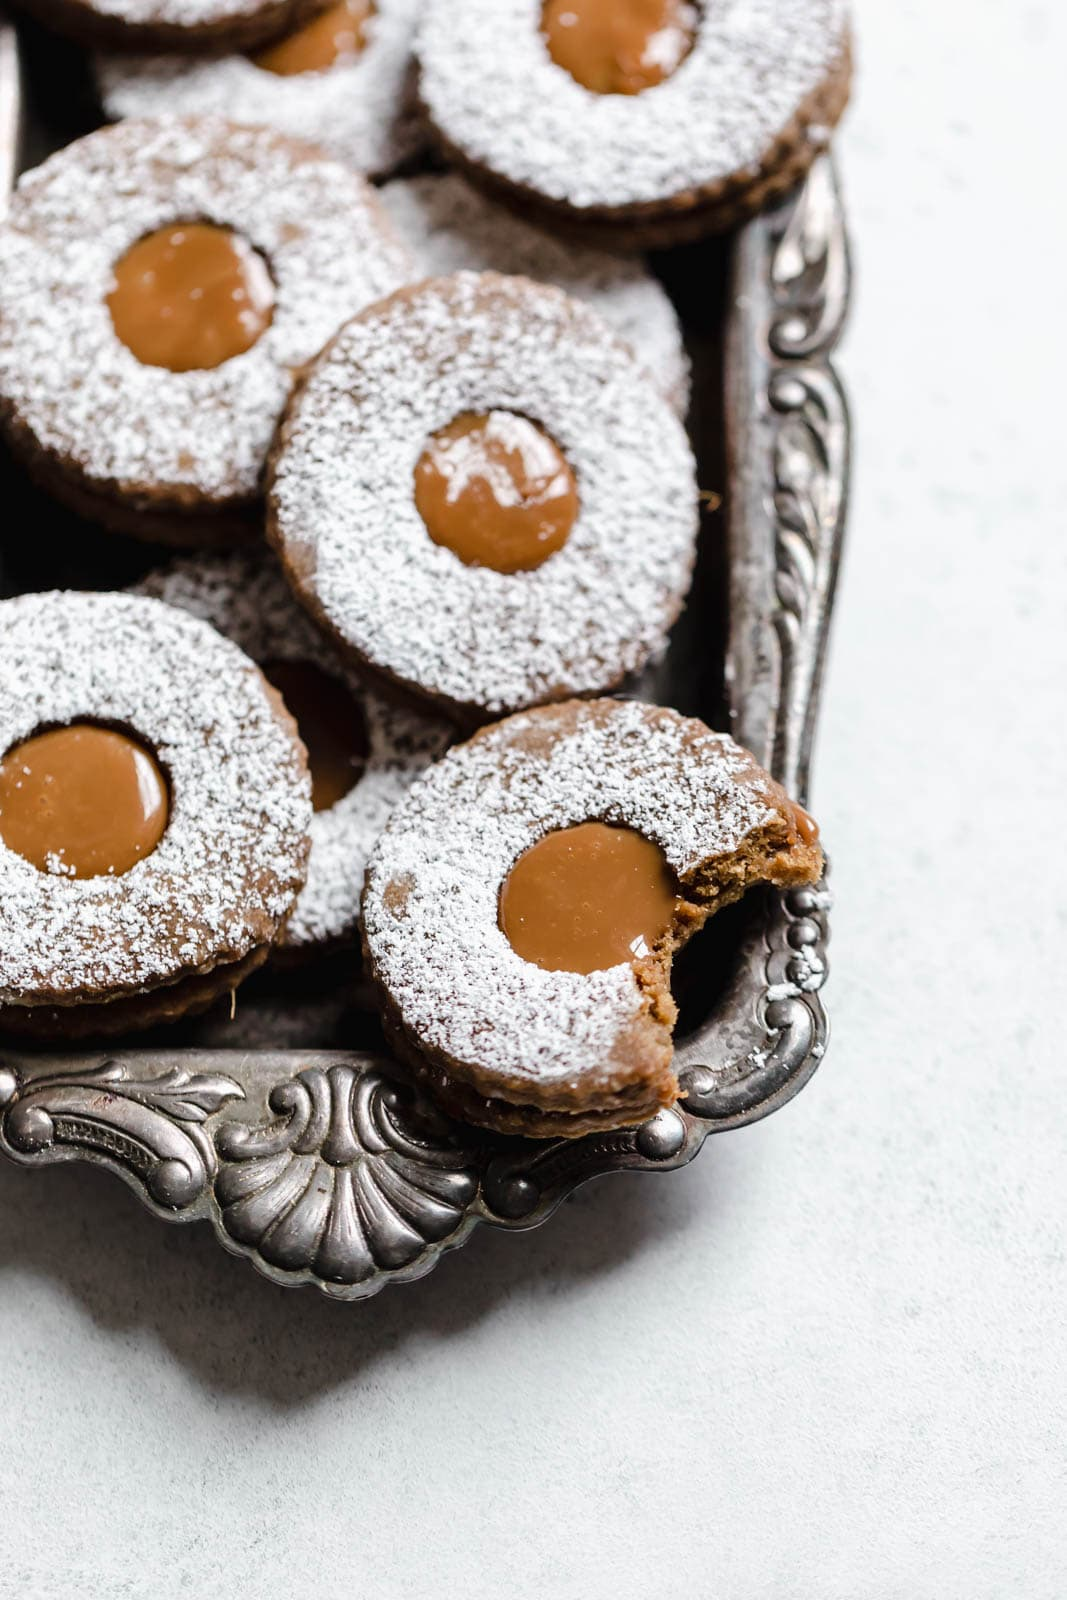 Gingerbread Linzer Cookies topped with powdered sugar